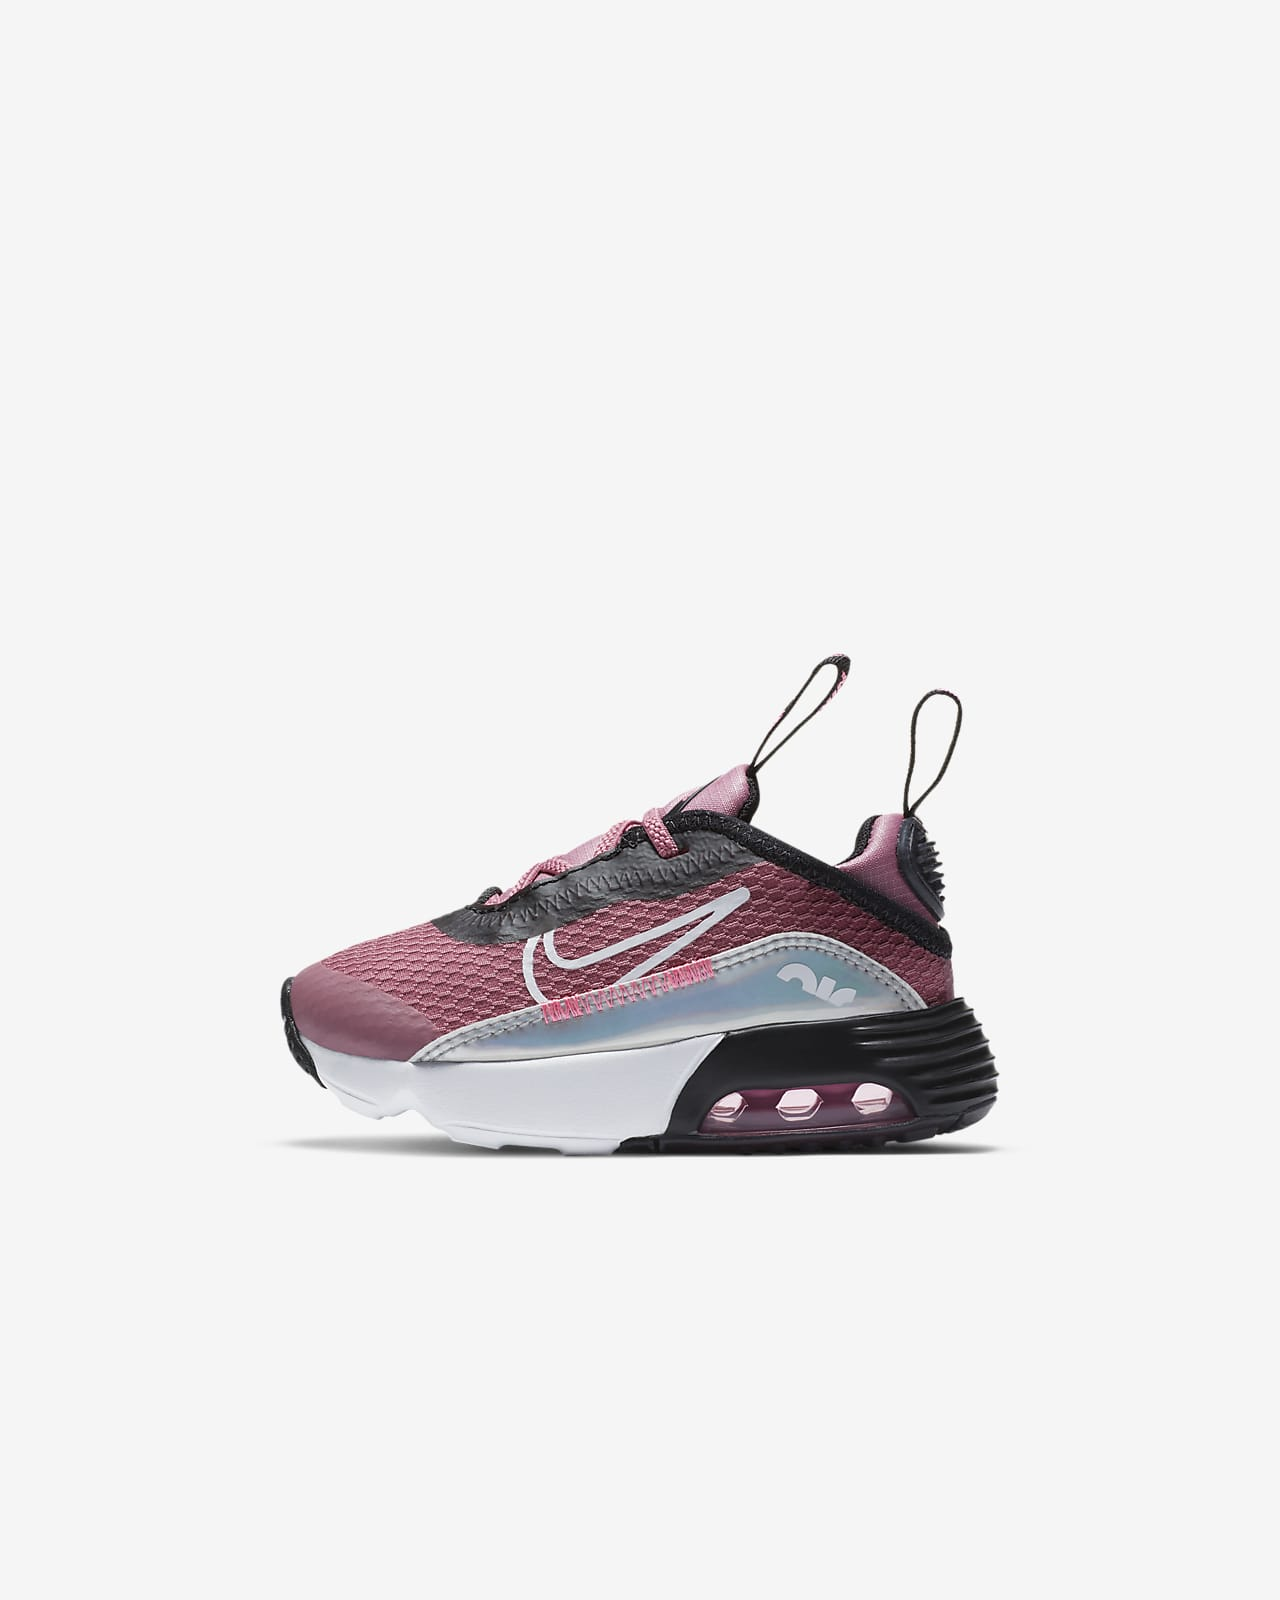 Nike Air Max 2090 SE Baby/Toddler Shoe